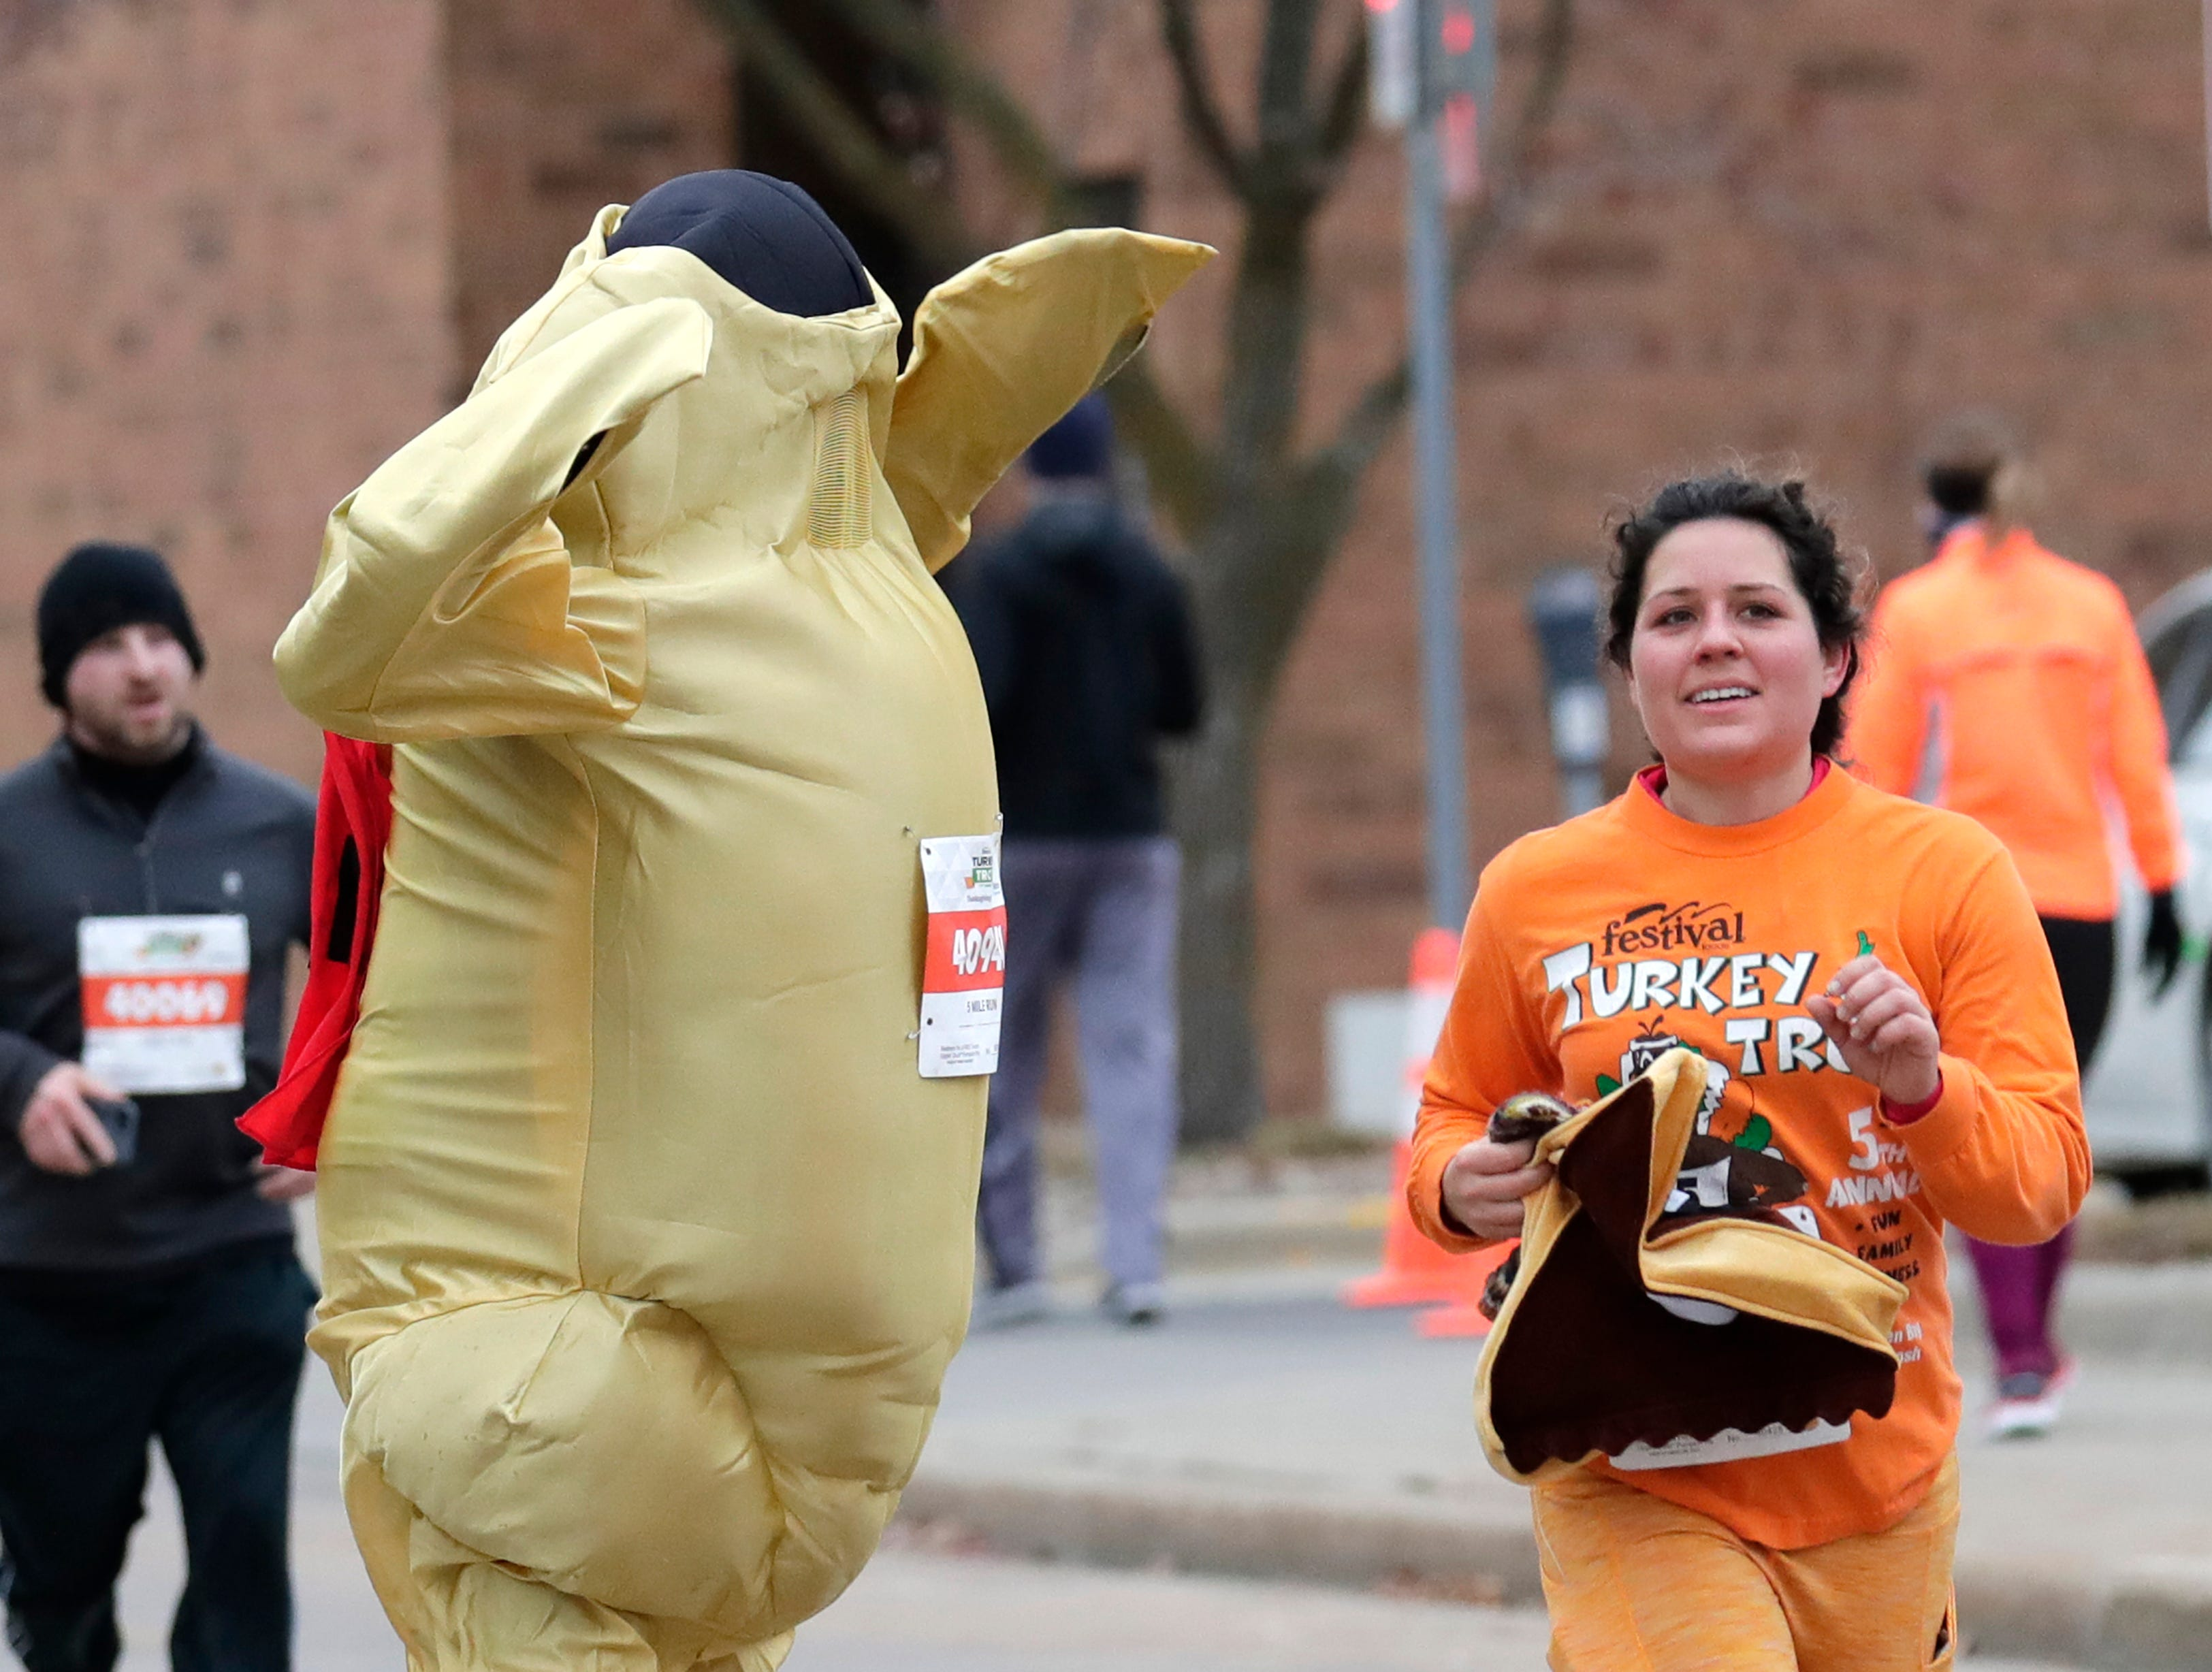 People participate in the 11th Annual Festival Foods Turkey Trot Thursday, November 22, 2018, in Appleton, Wis. 